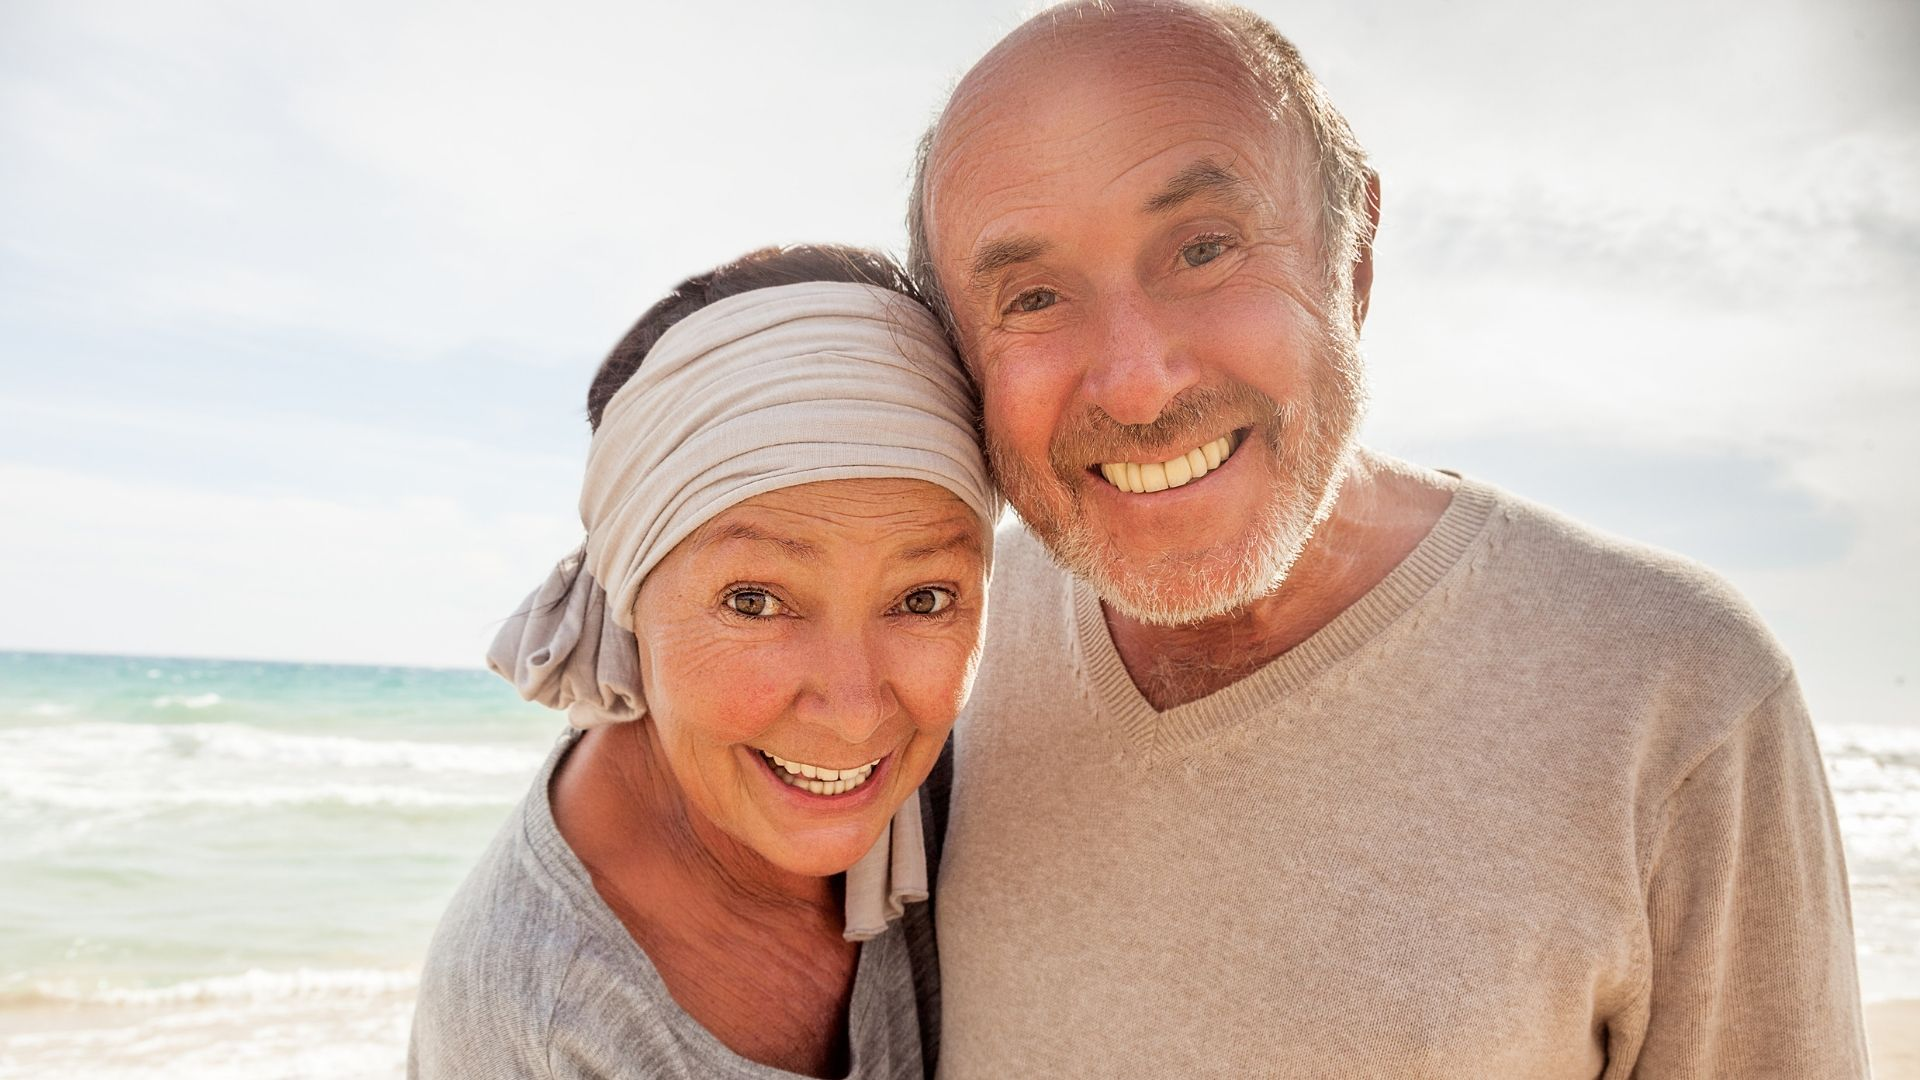 older couple on a beach taking a selfie